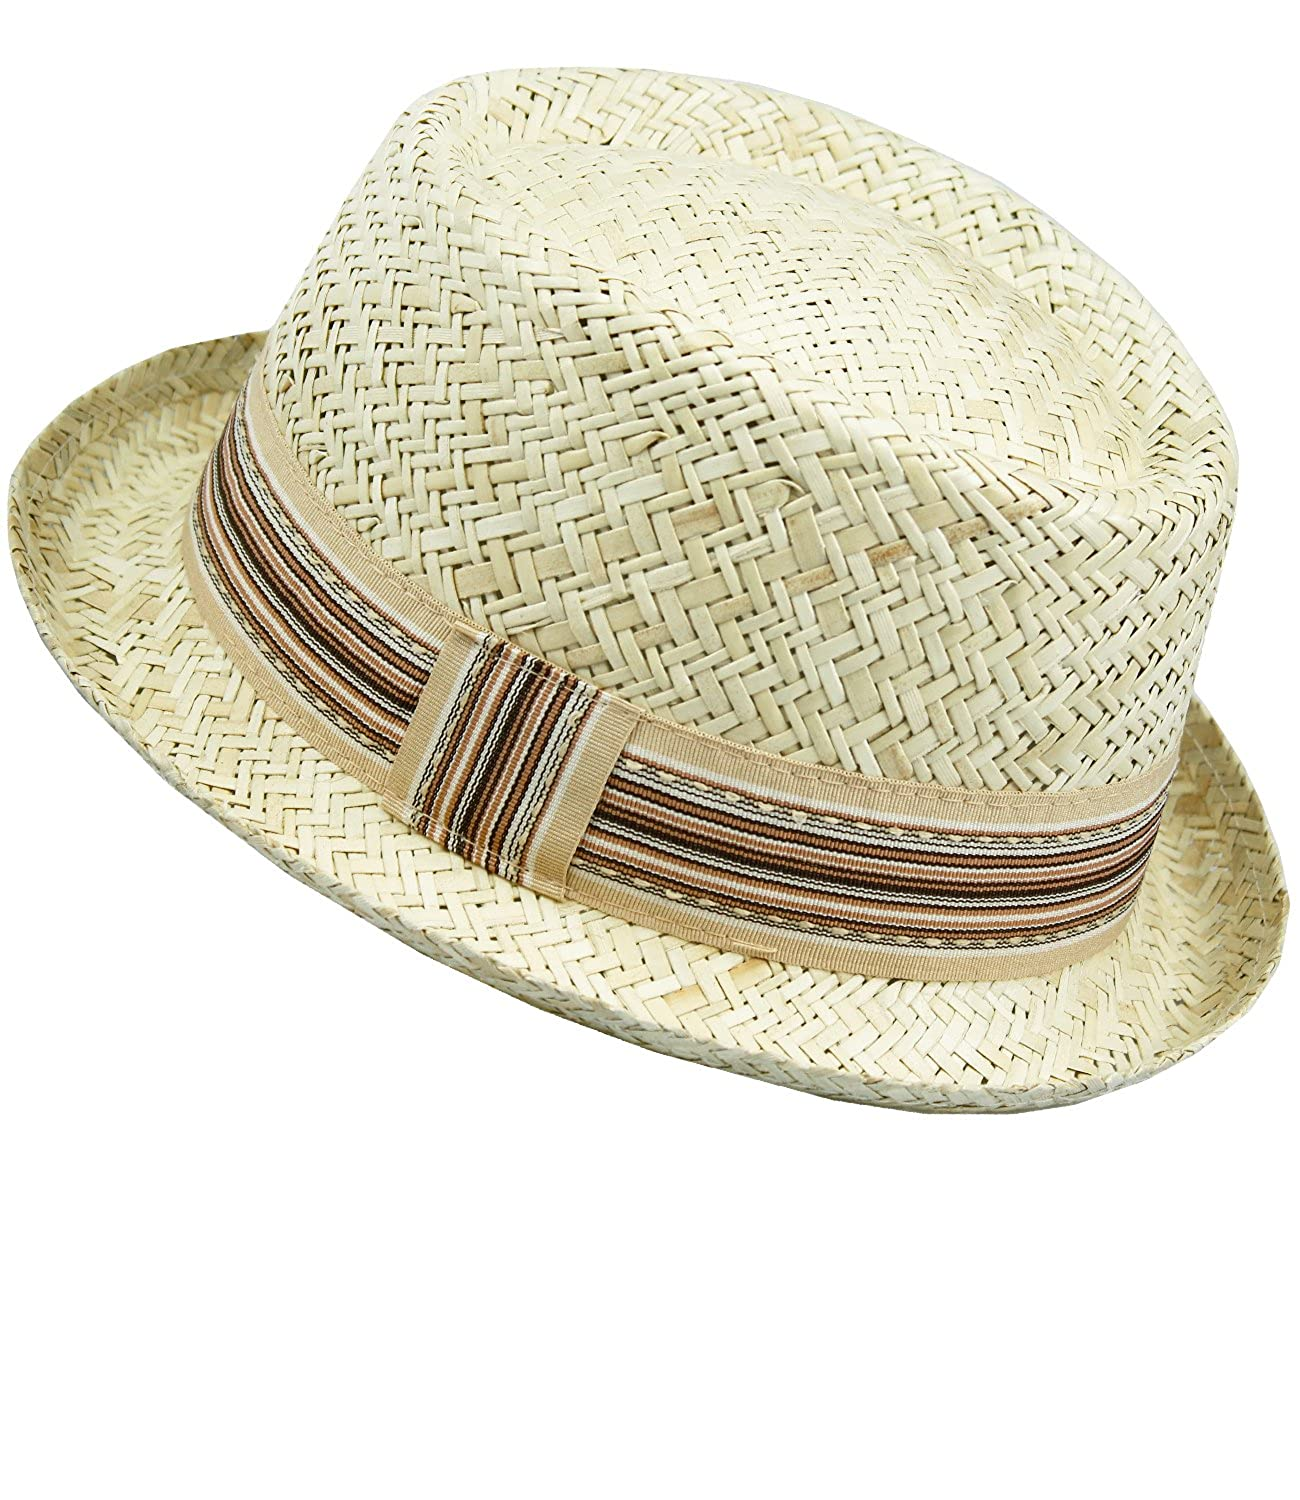 EveryHead Fiebig Men's Straw Hat Porkpie Pork Pie Summer Coneflower Fashion Holiday Beach with Ribbed Band for Men (FI-16546-S17-HE1) incl Hutfibel